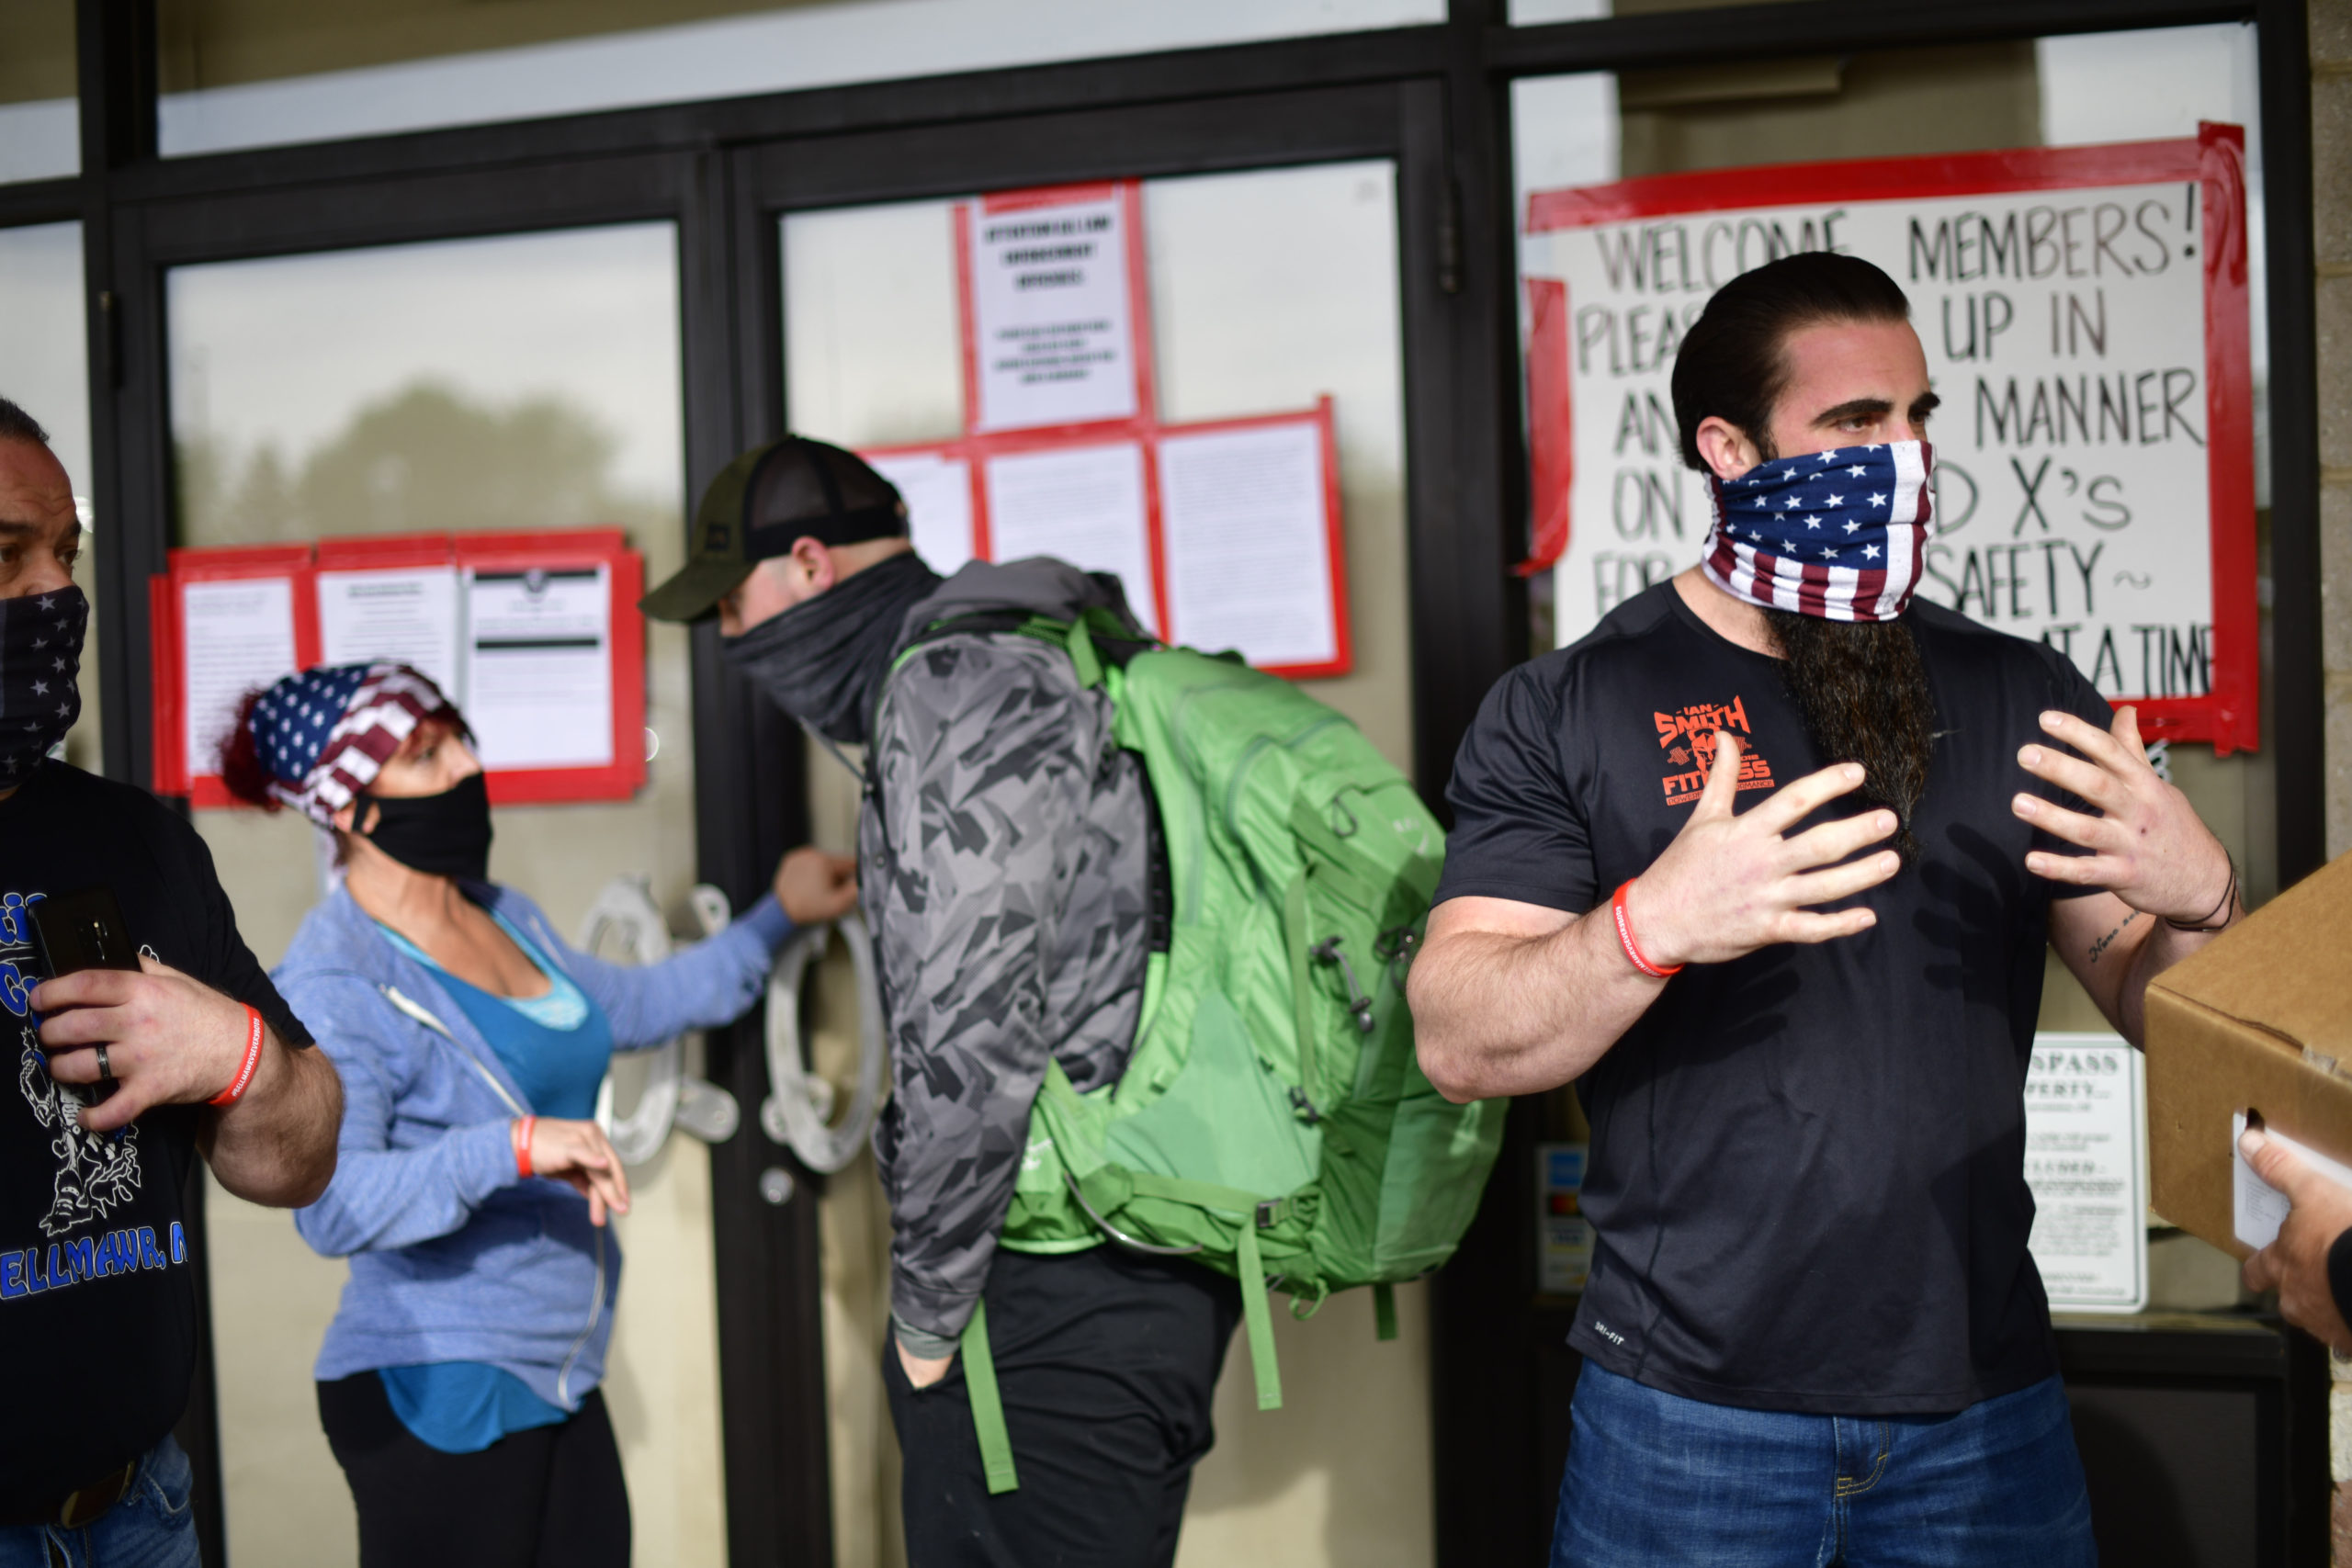 BELLMAWR, NJ - MAY 20: Employees confer with patrons lining up outside the Atilis Gym on May 20, 2020 in Bellmawr, New Jersey. The gym has opened for the third consecutive day, defying the New Jersey Governor's mandate that many retail businesses stay closed due to the coronavirus pandemic. (Mark Makela/Getty Images)